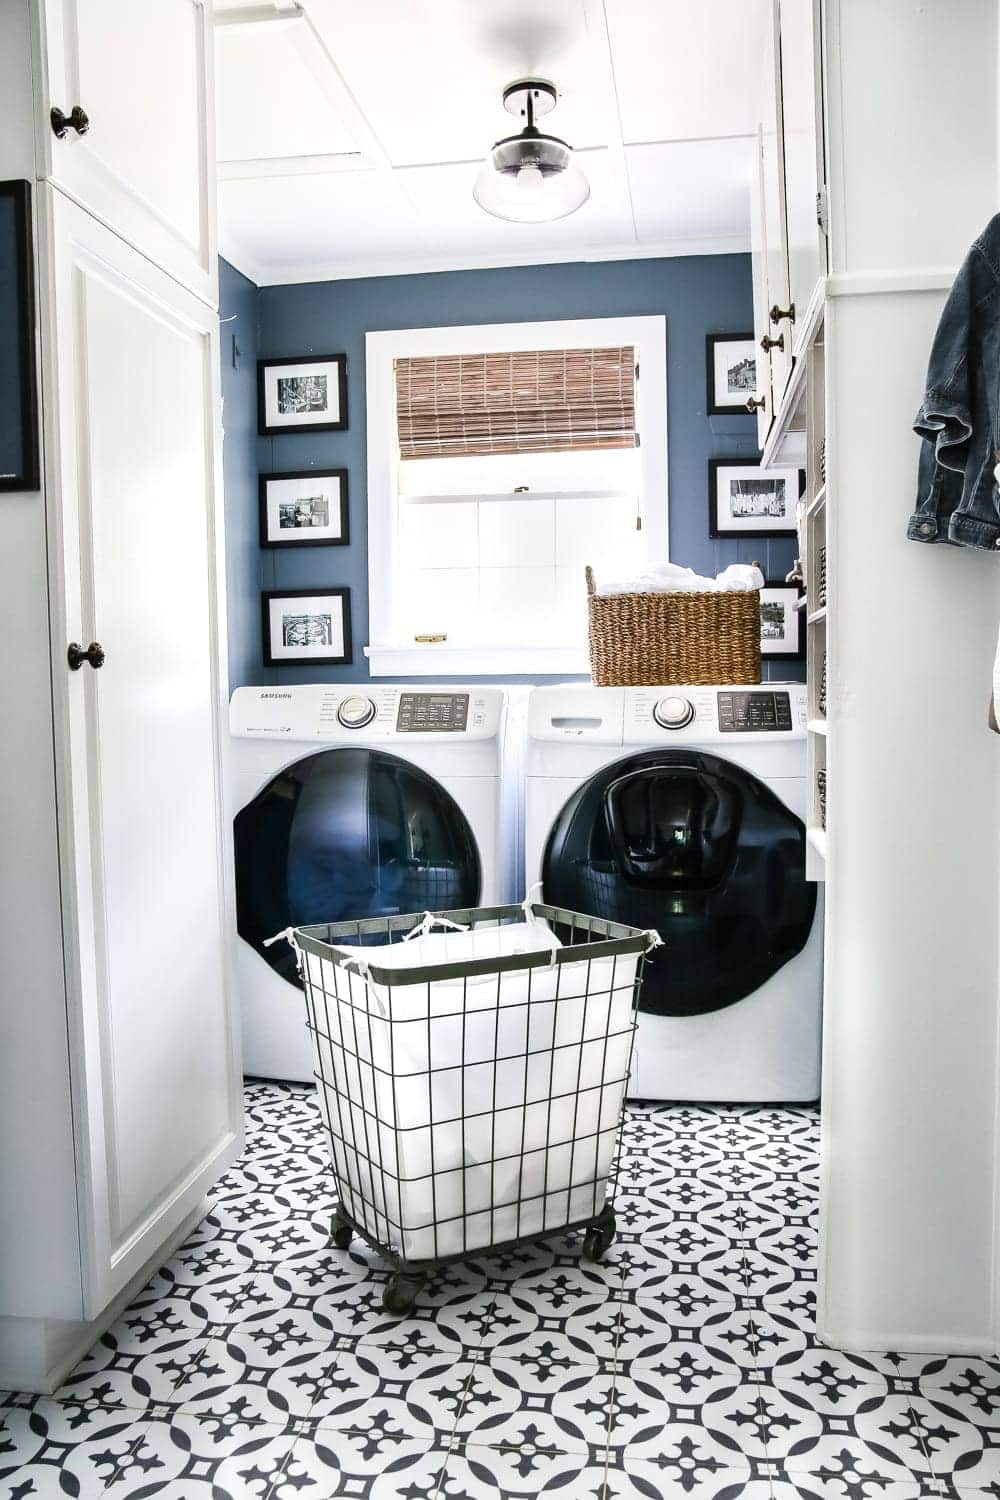 High Contrast Laundry Room Makeover | blesserhouse.com - A dingy and dated laundry room gets a high contrast navy and white makeover packed with organizational strategies and budget-conscious DIY projects.